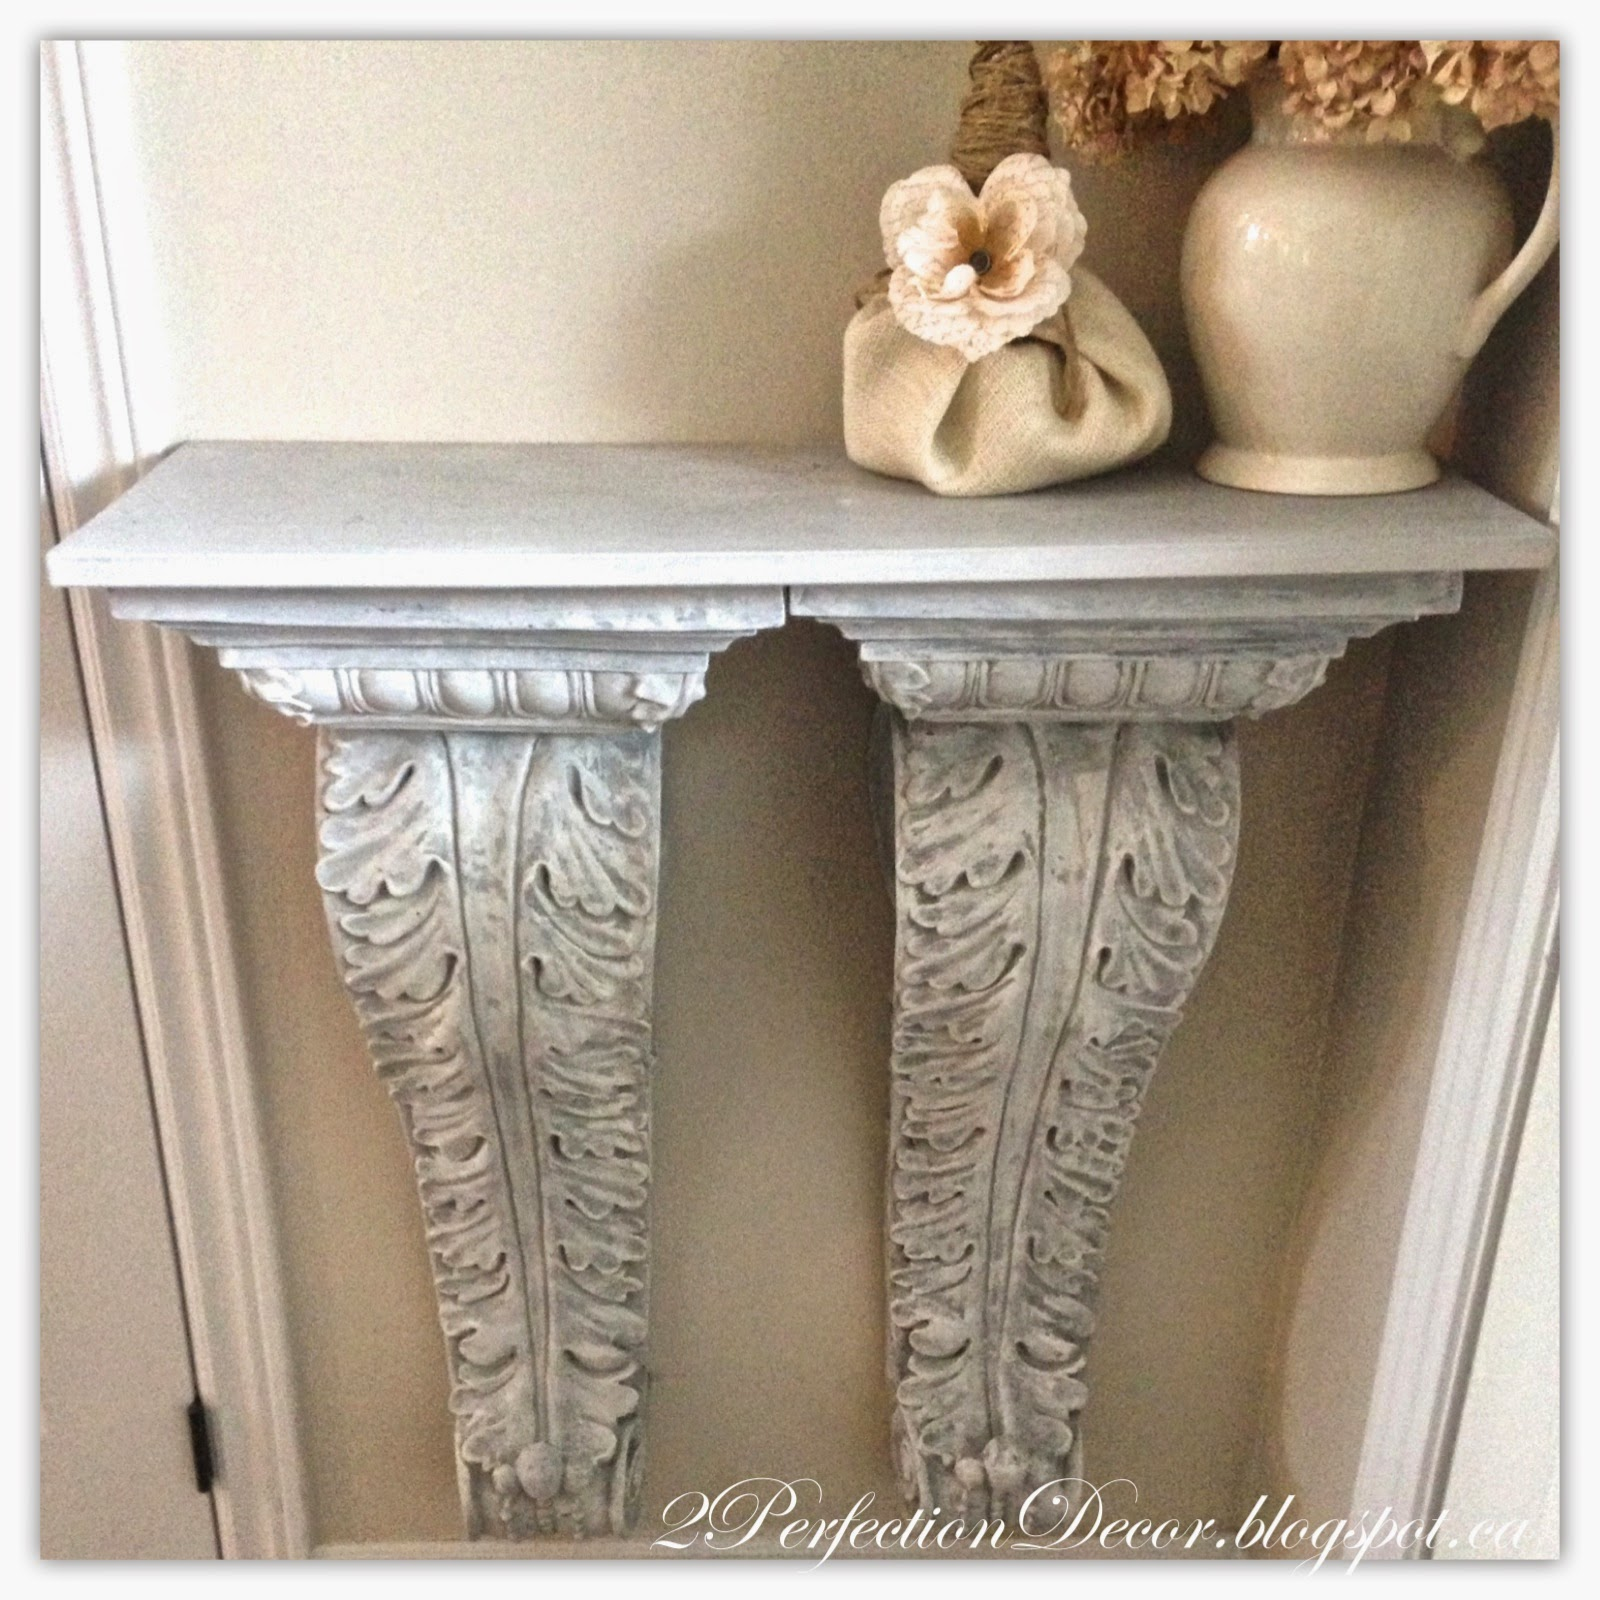 ballard designs mirror luxury laid back for summer 2017 how to 2perfection decor our entryway foyer reveal i found this beautiful mirror with hooks from ballard designs